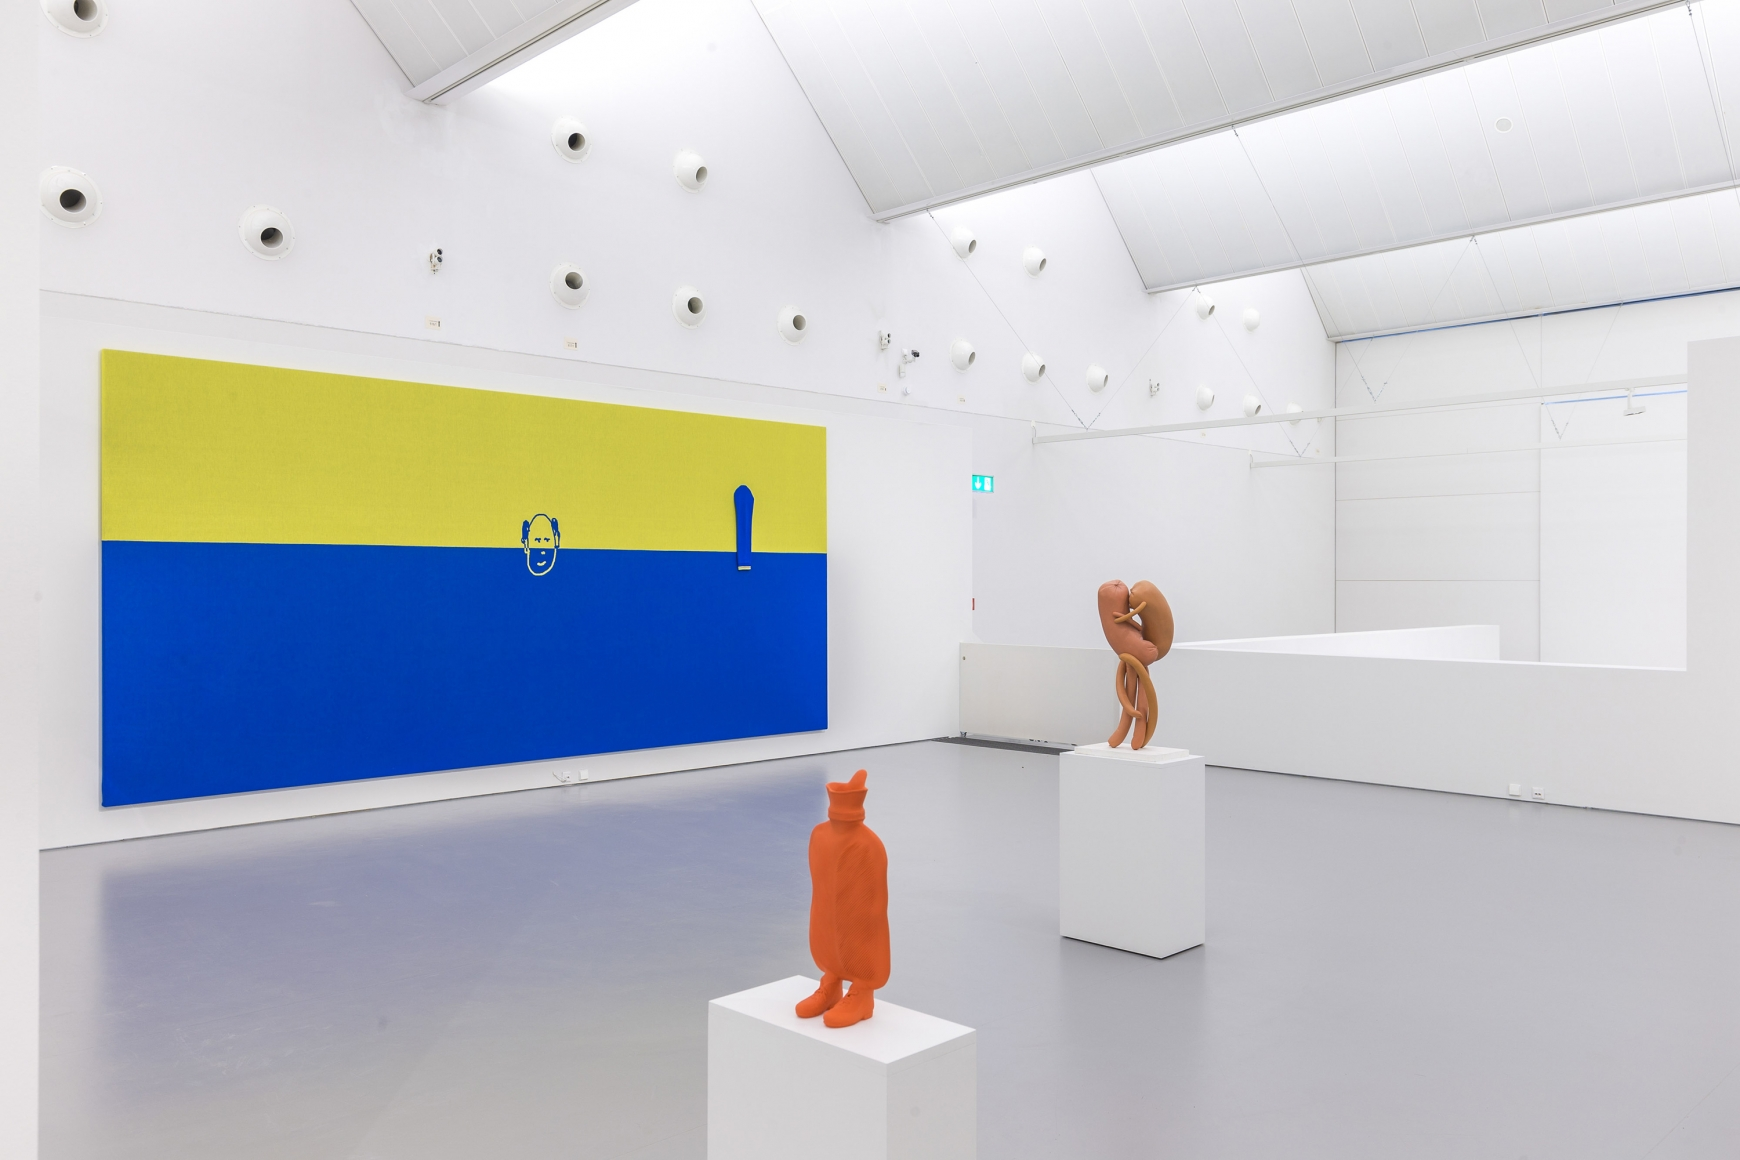 Erwin Wurm, Ende, Installation view